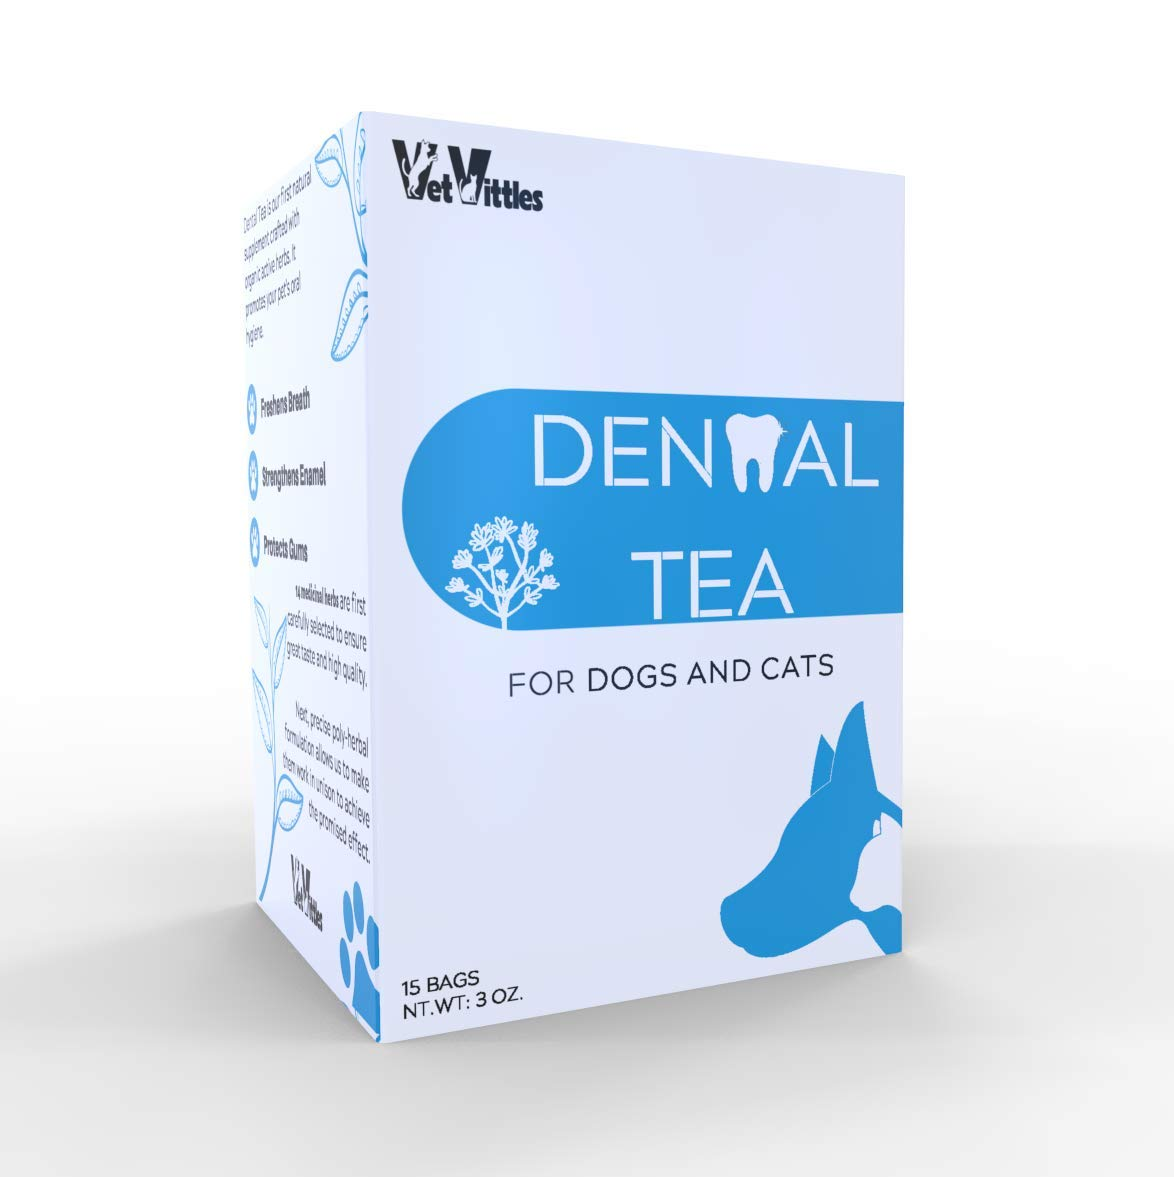 VetVittles Dental Tea for Dogs and Cats